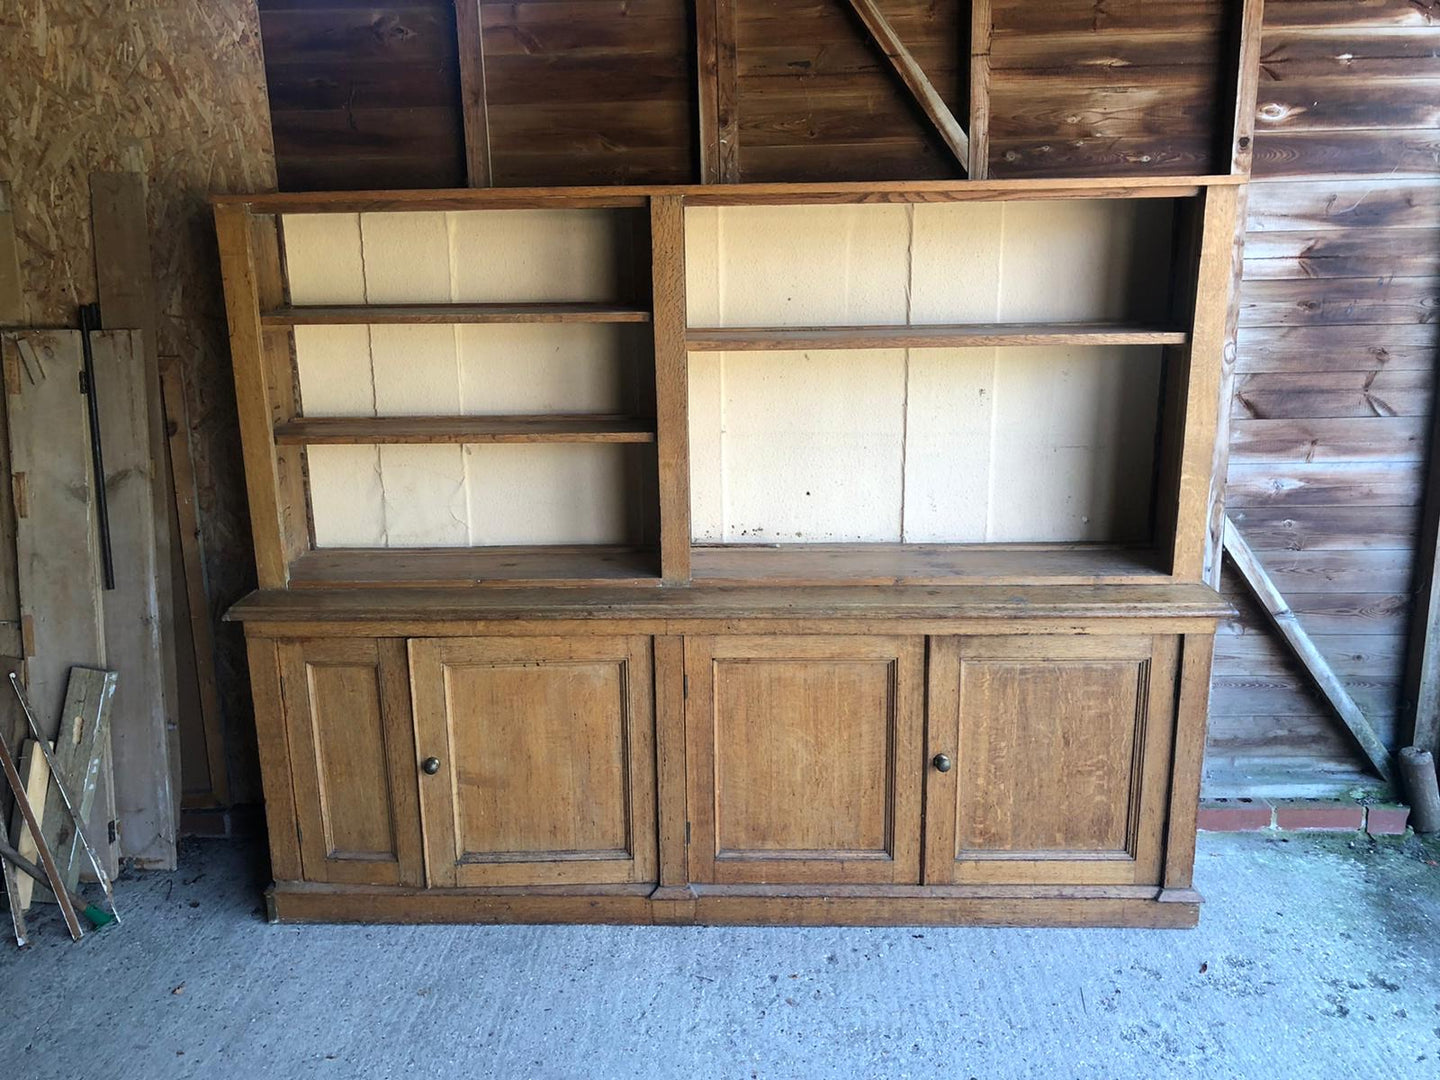 English Antique Victorian Oak Dresser - Fabulous English Country Cottage Antique